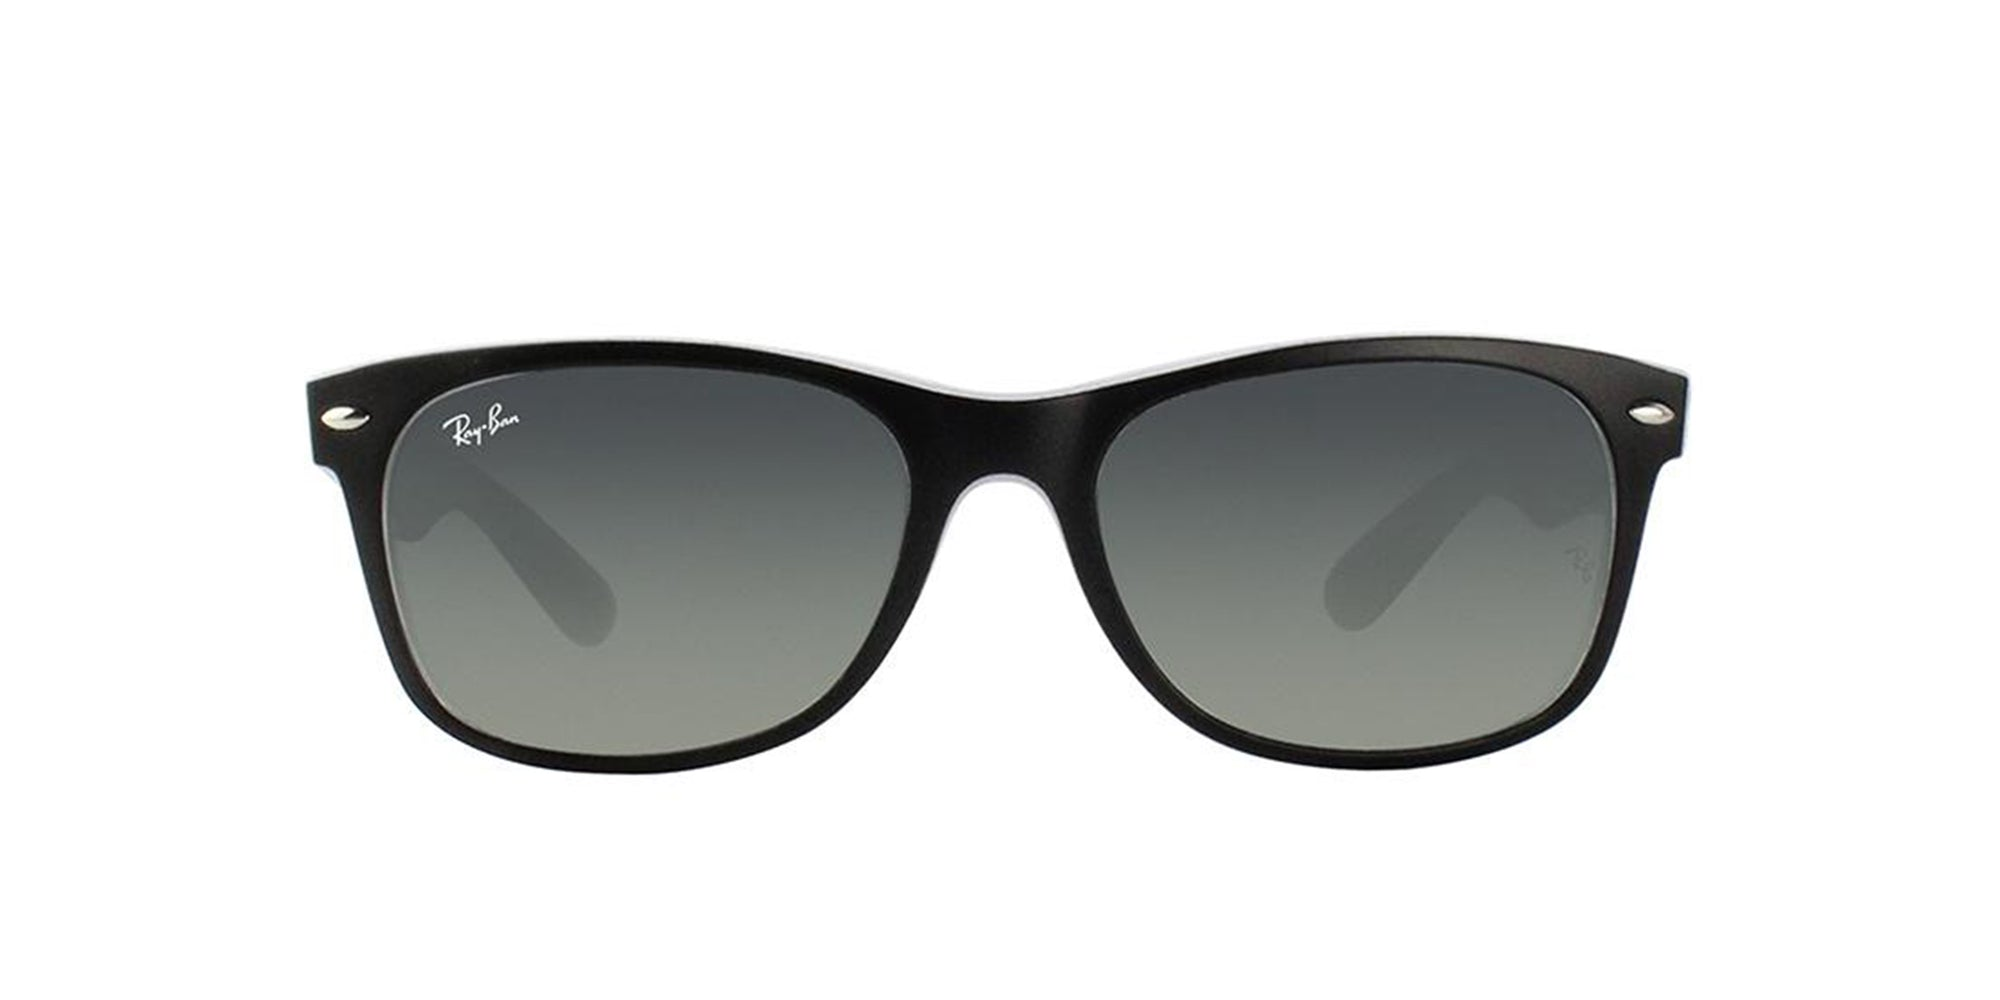 Ray Ban - New Wayfarer Black Wayfarer Women Sunglasses - 55mm-Sunglasses-Designer Eyes